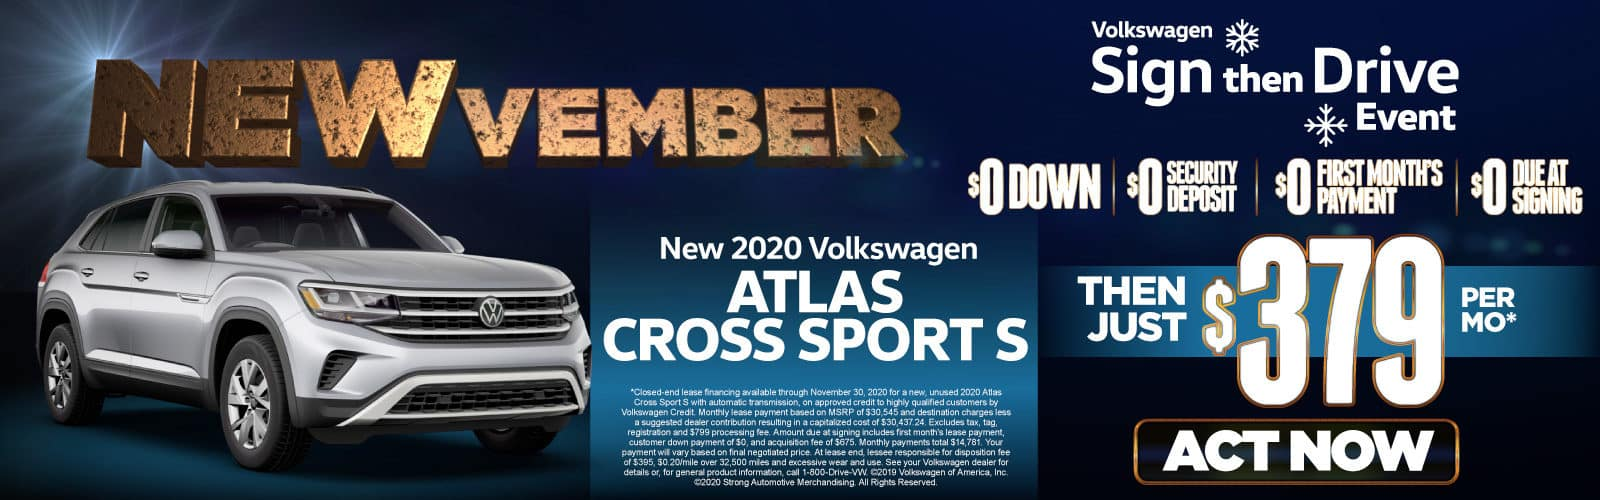 New 2020 VW Atlas Cross Sport - Only $379 a month - Act Now